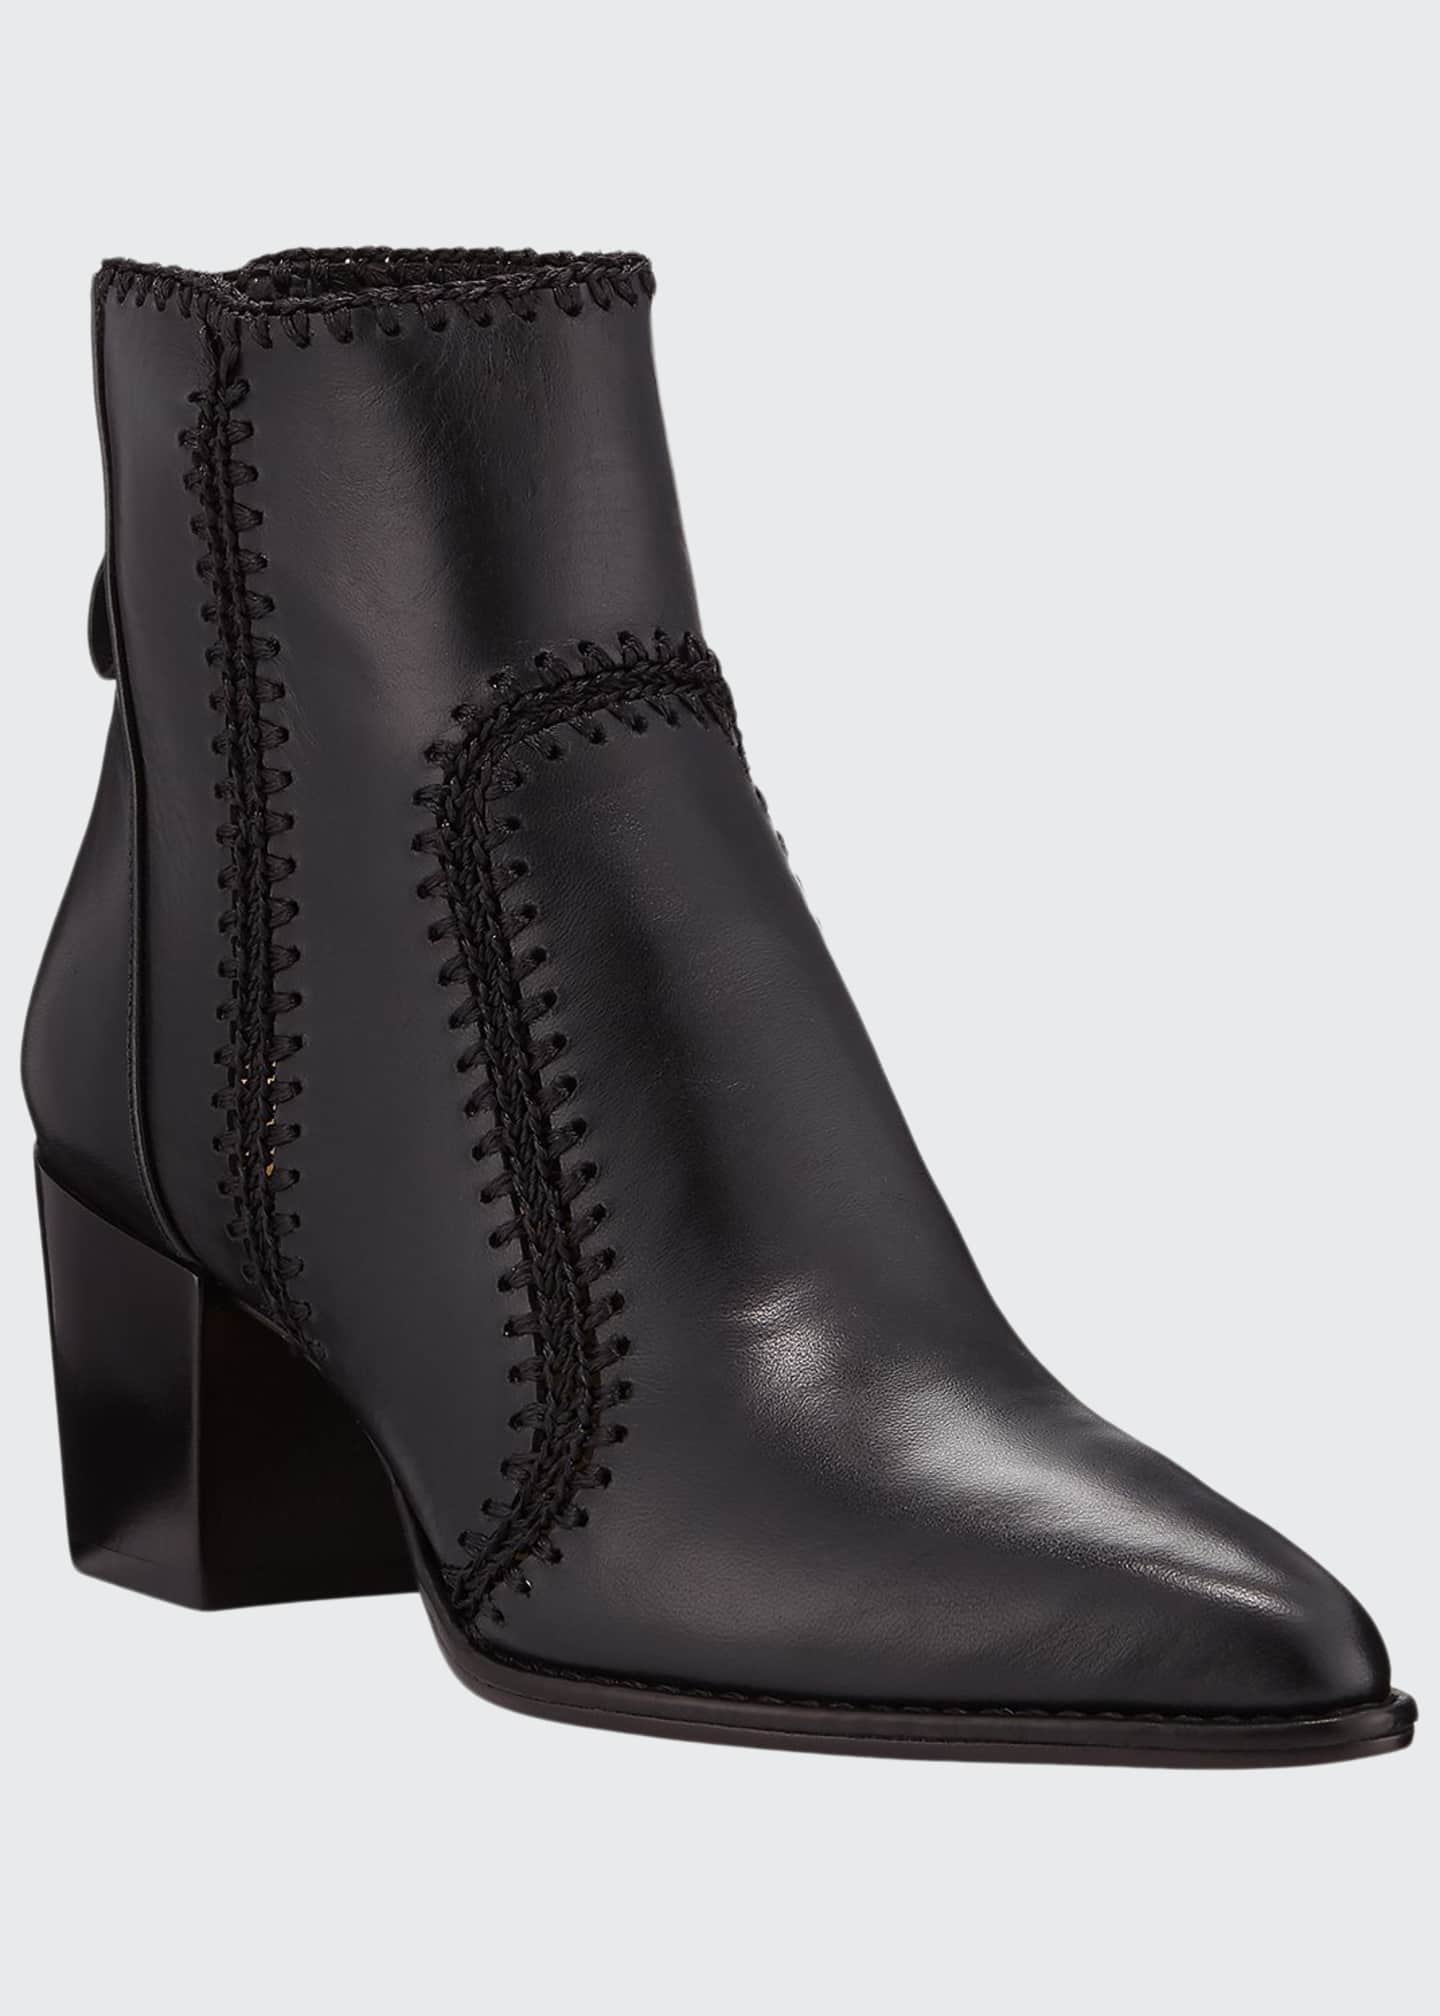 Alexandre Birman Benta Stitched Leather Block-Heel Booties